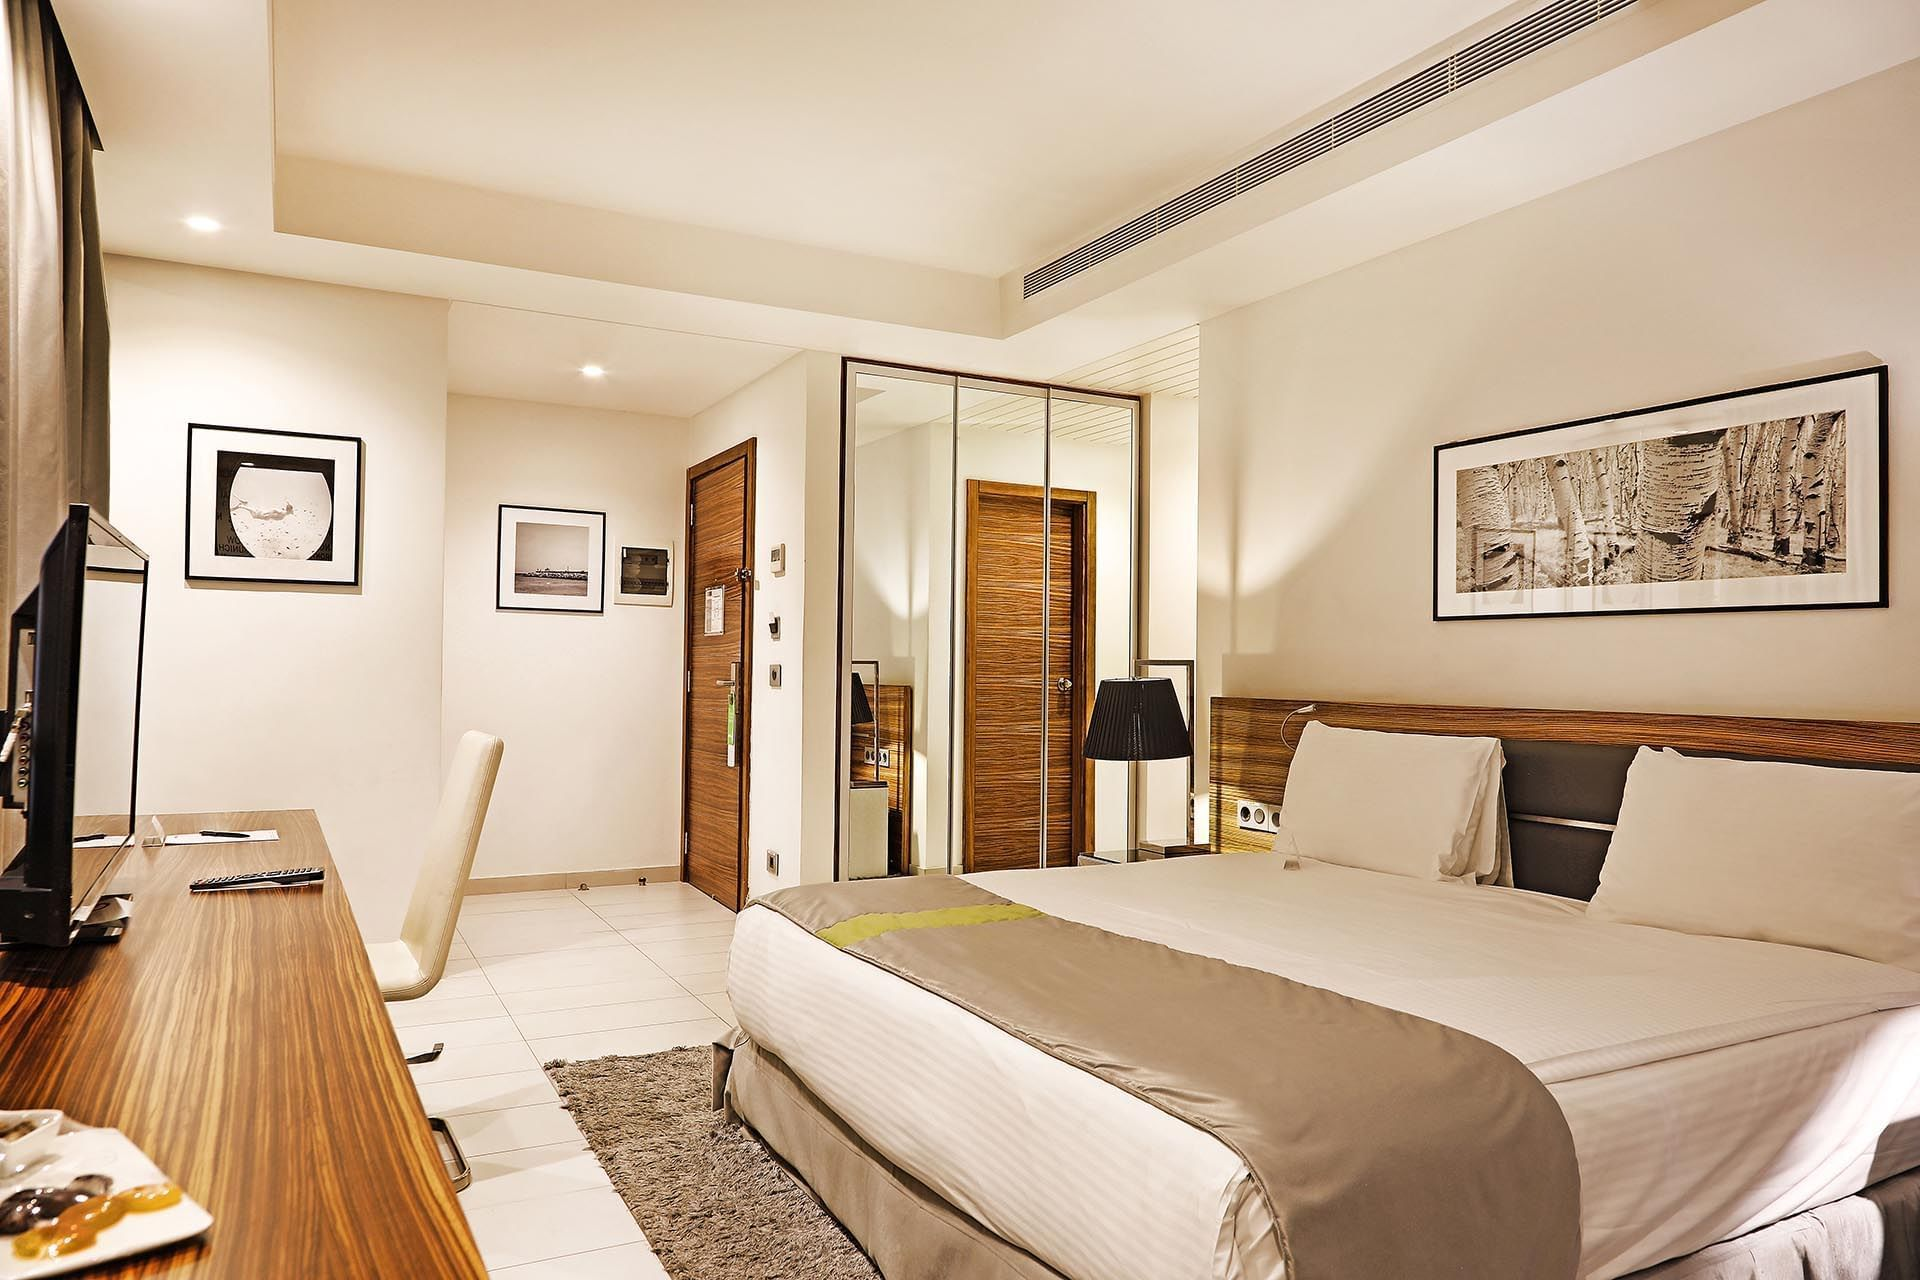 Deluxe Room at Warwick Stone 55